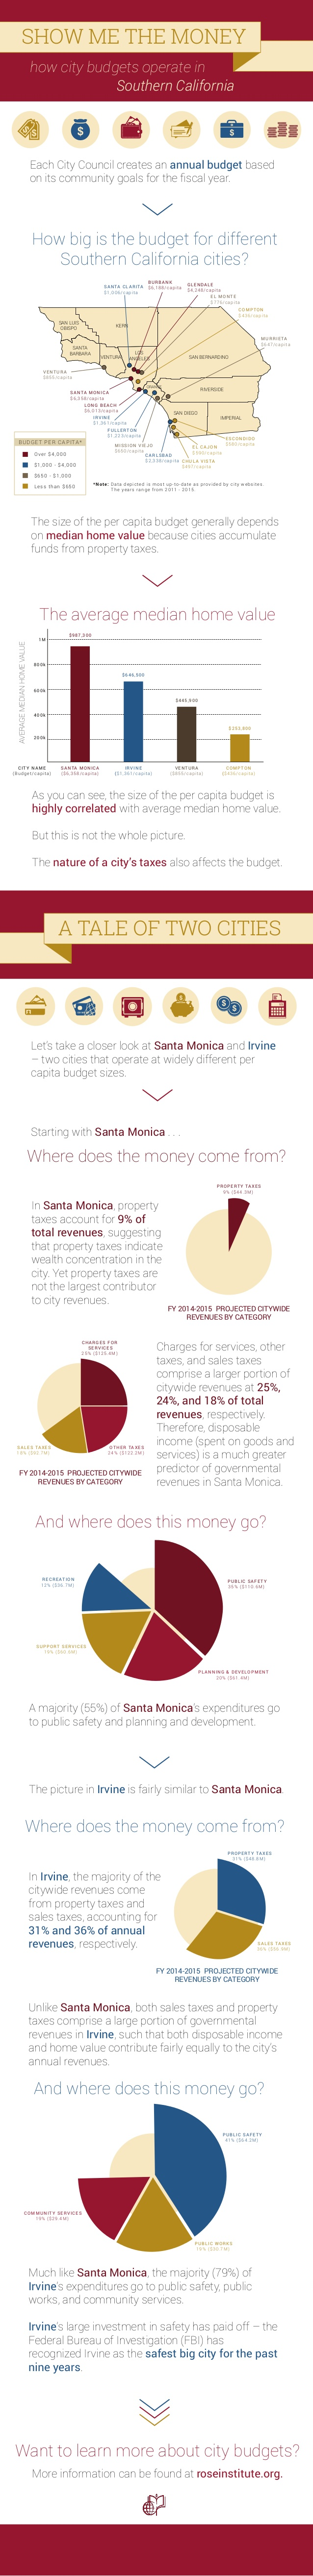 show-me-the-money-how-city-budgets-work-in-southern-california-1-638